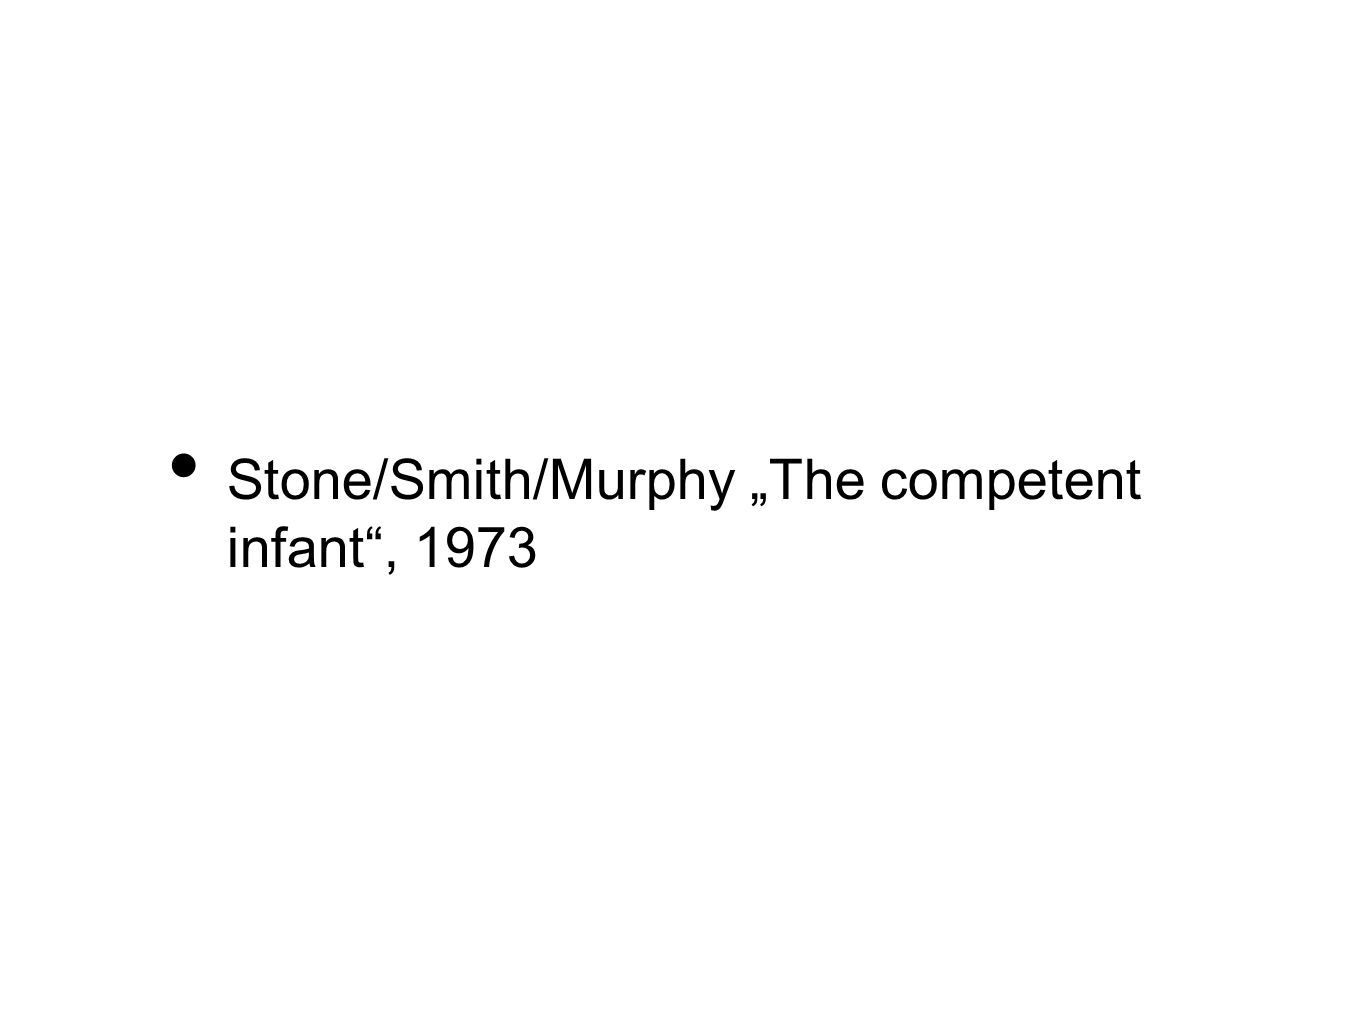 Stone/Smith/Murphy The competent infant, 1973